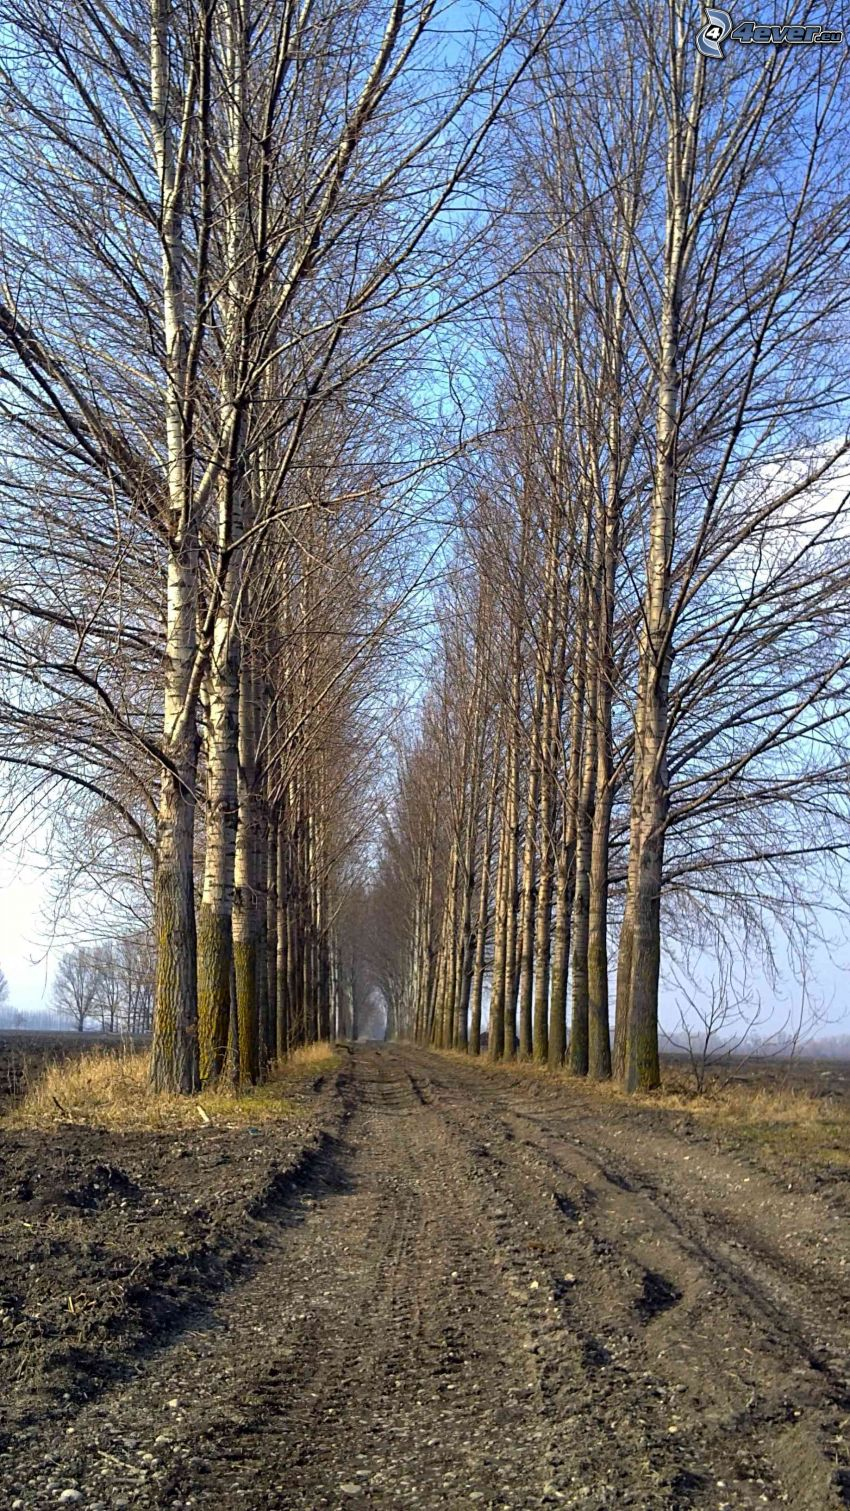 avenue of trees, field path